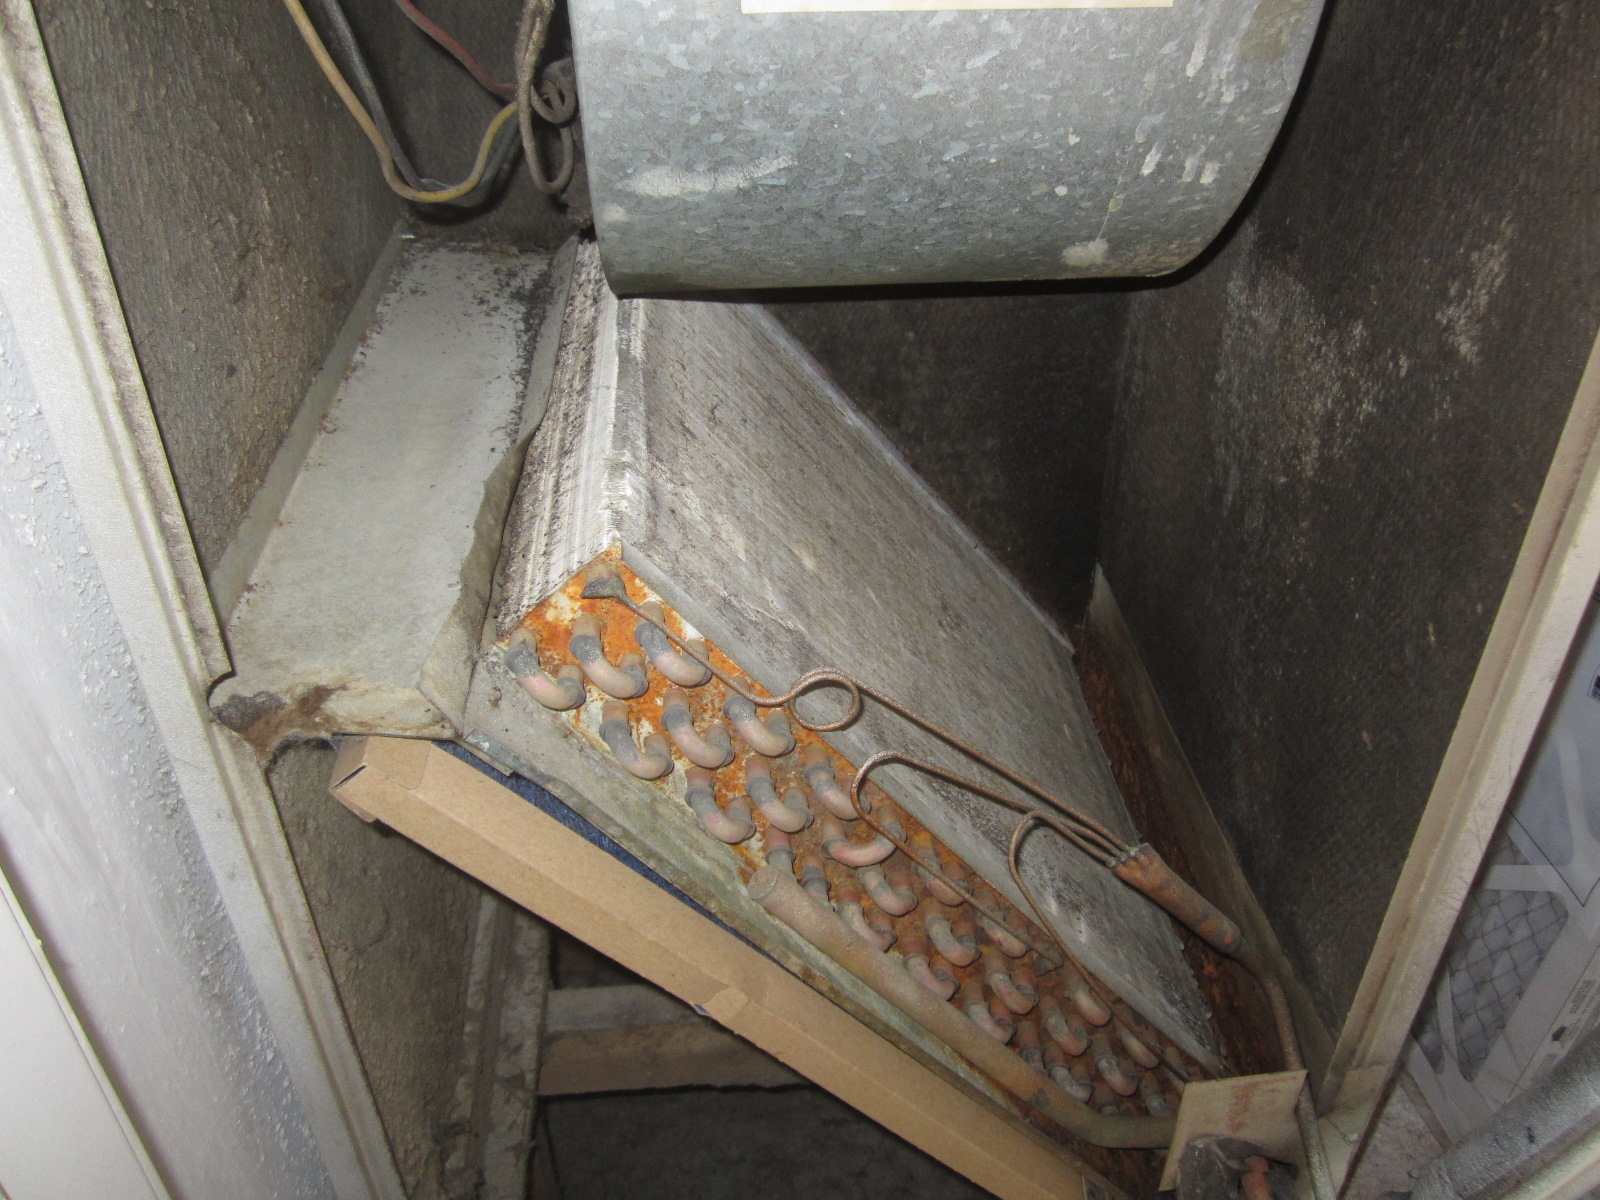 A Home Inspector Reports Rust In Evaporator Pan As A